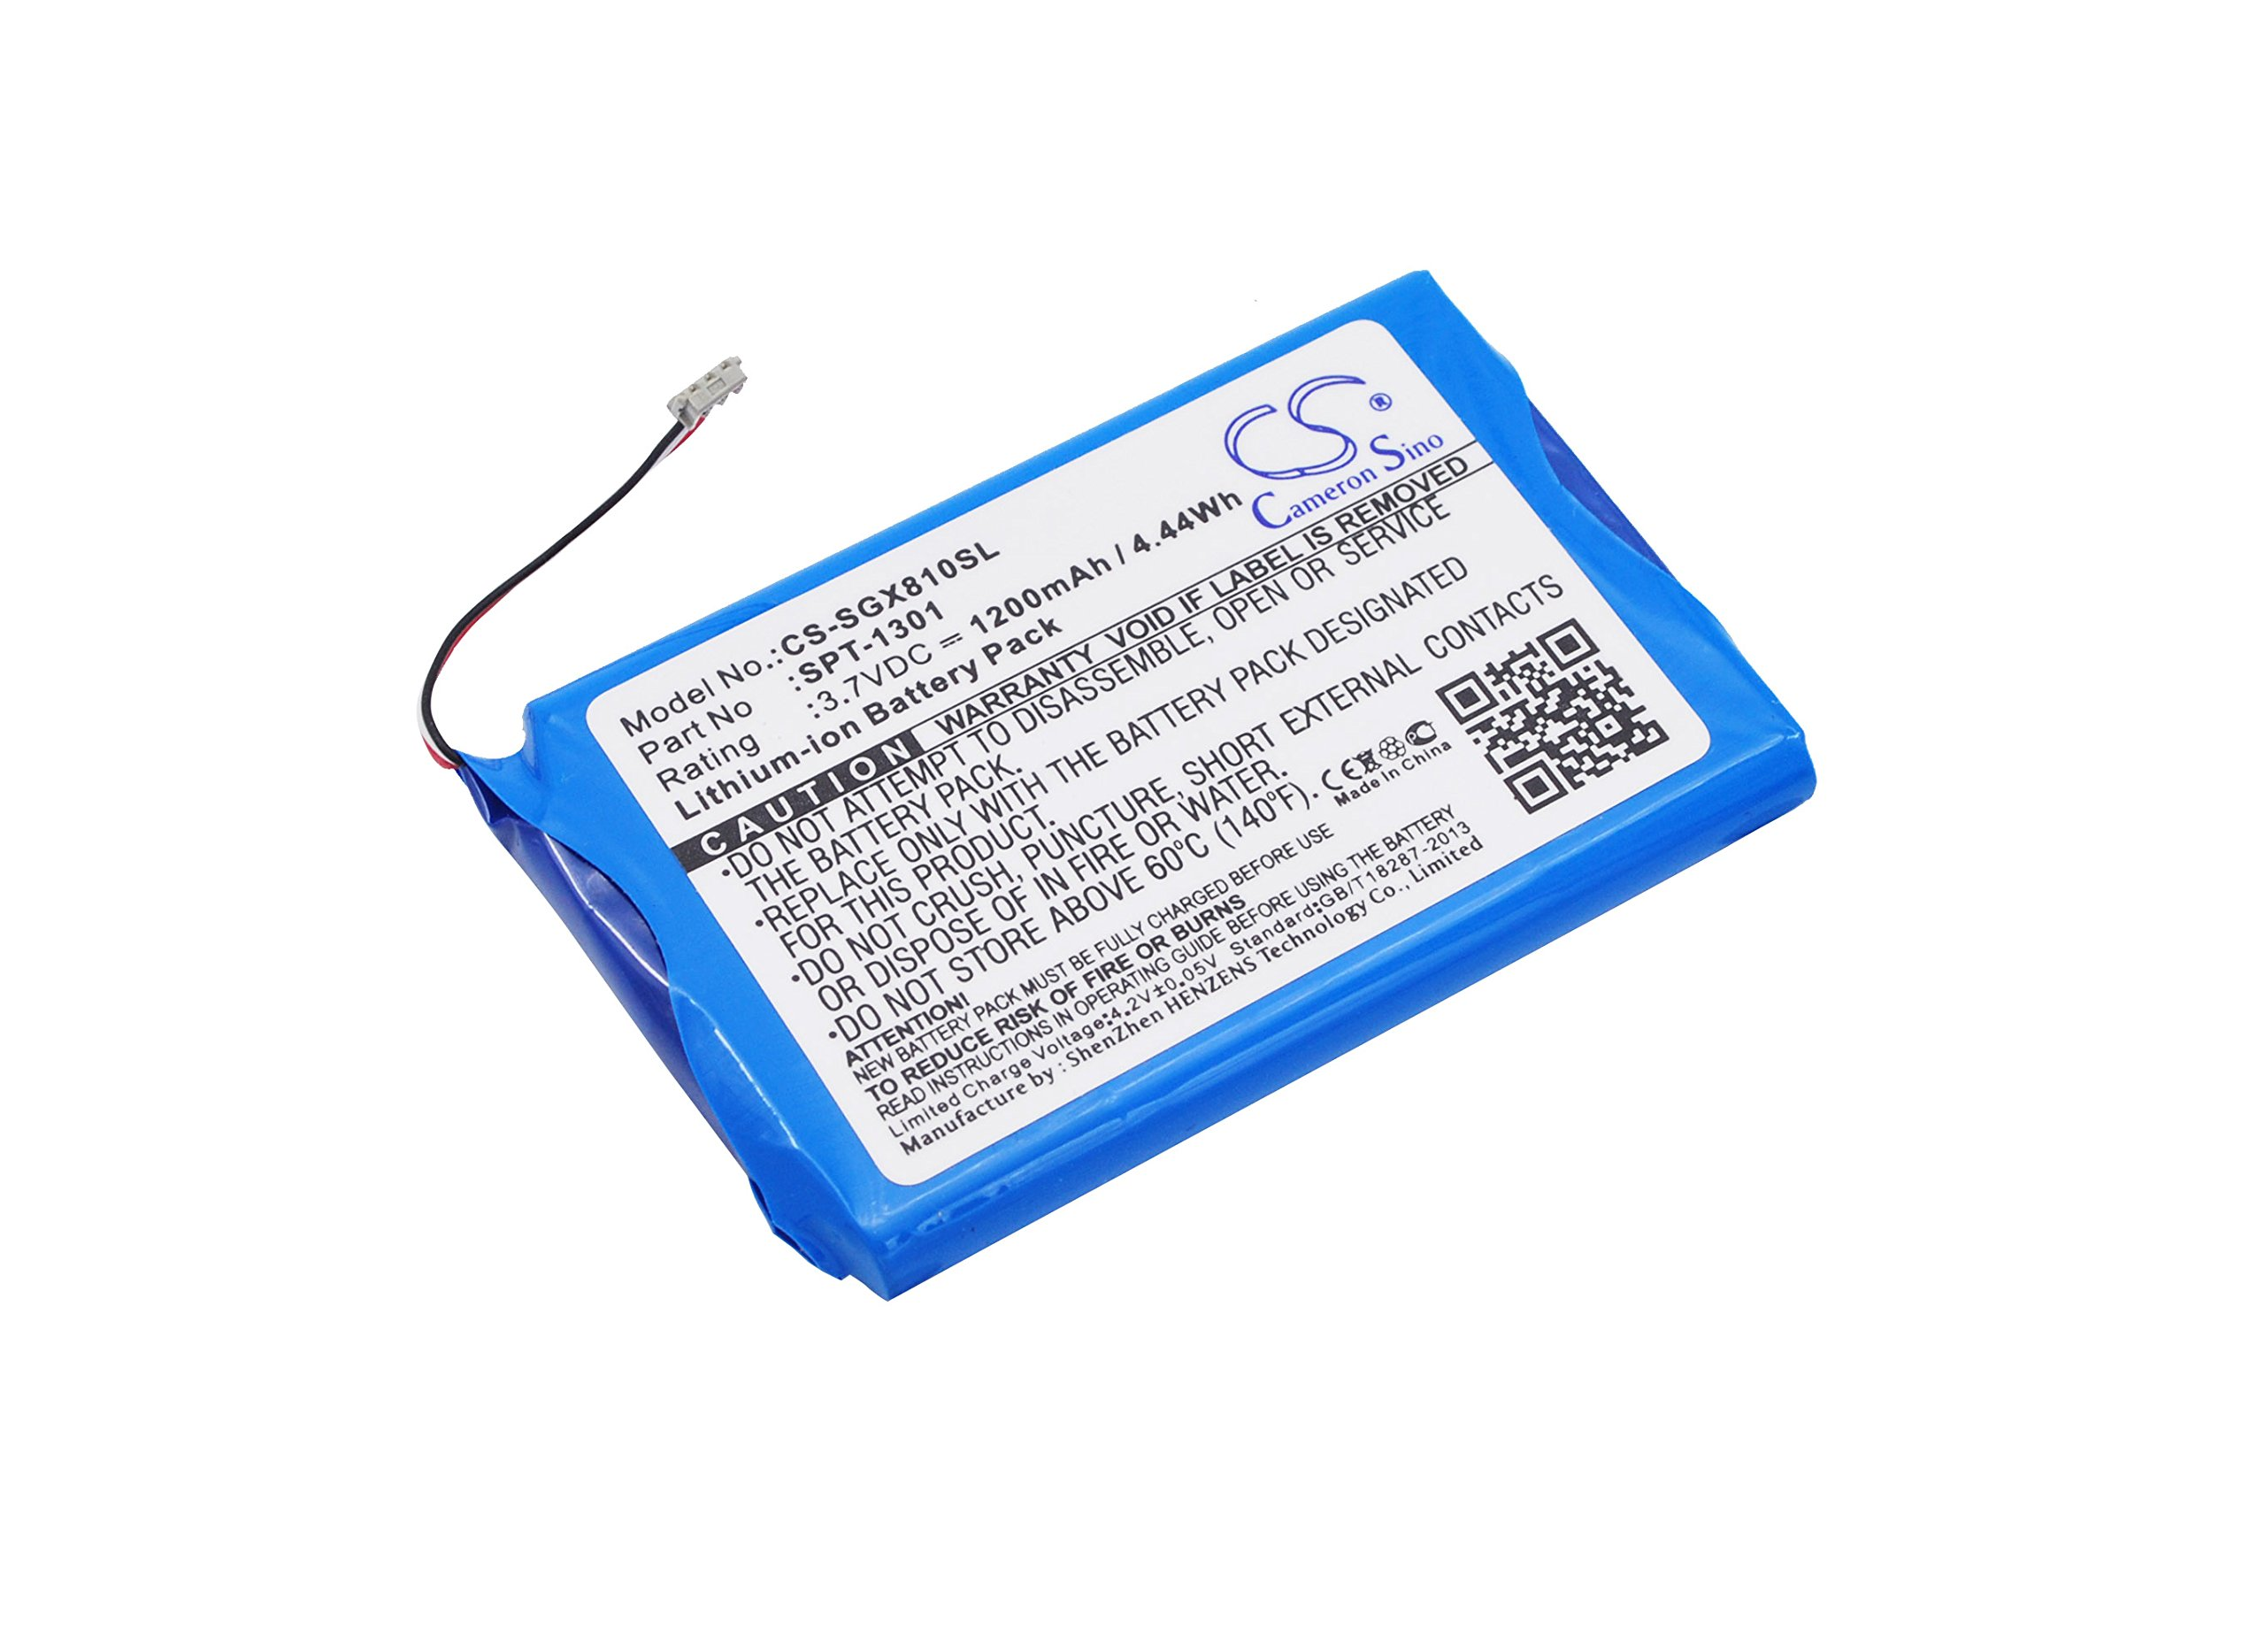 Cameron Sino 1200mAh/4.44Wh Replacement Battery for SkyGolf SkyCaddie Touch